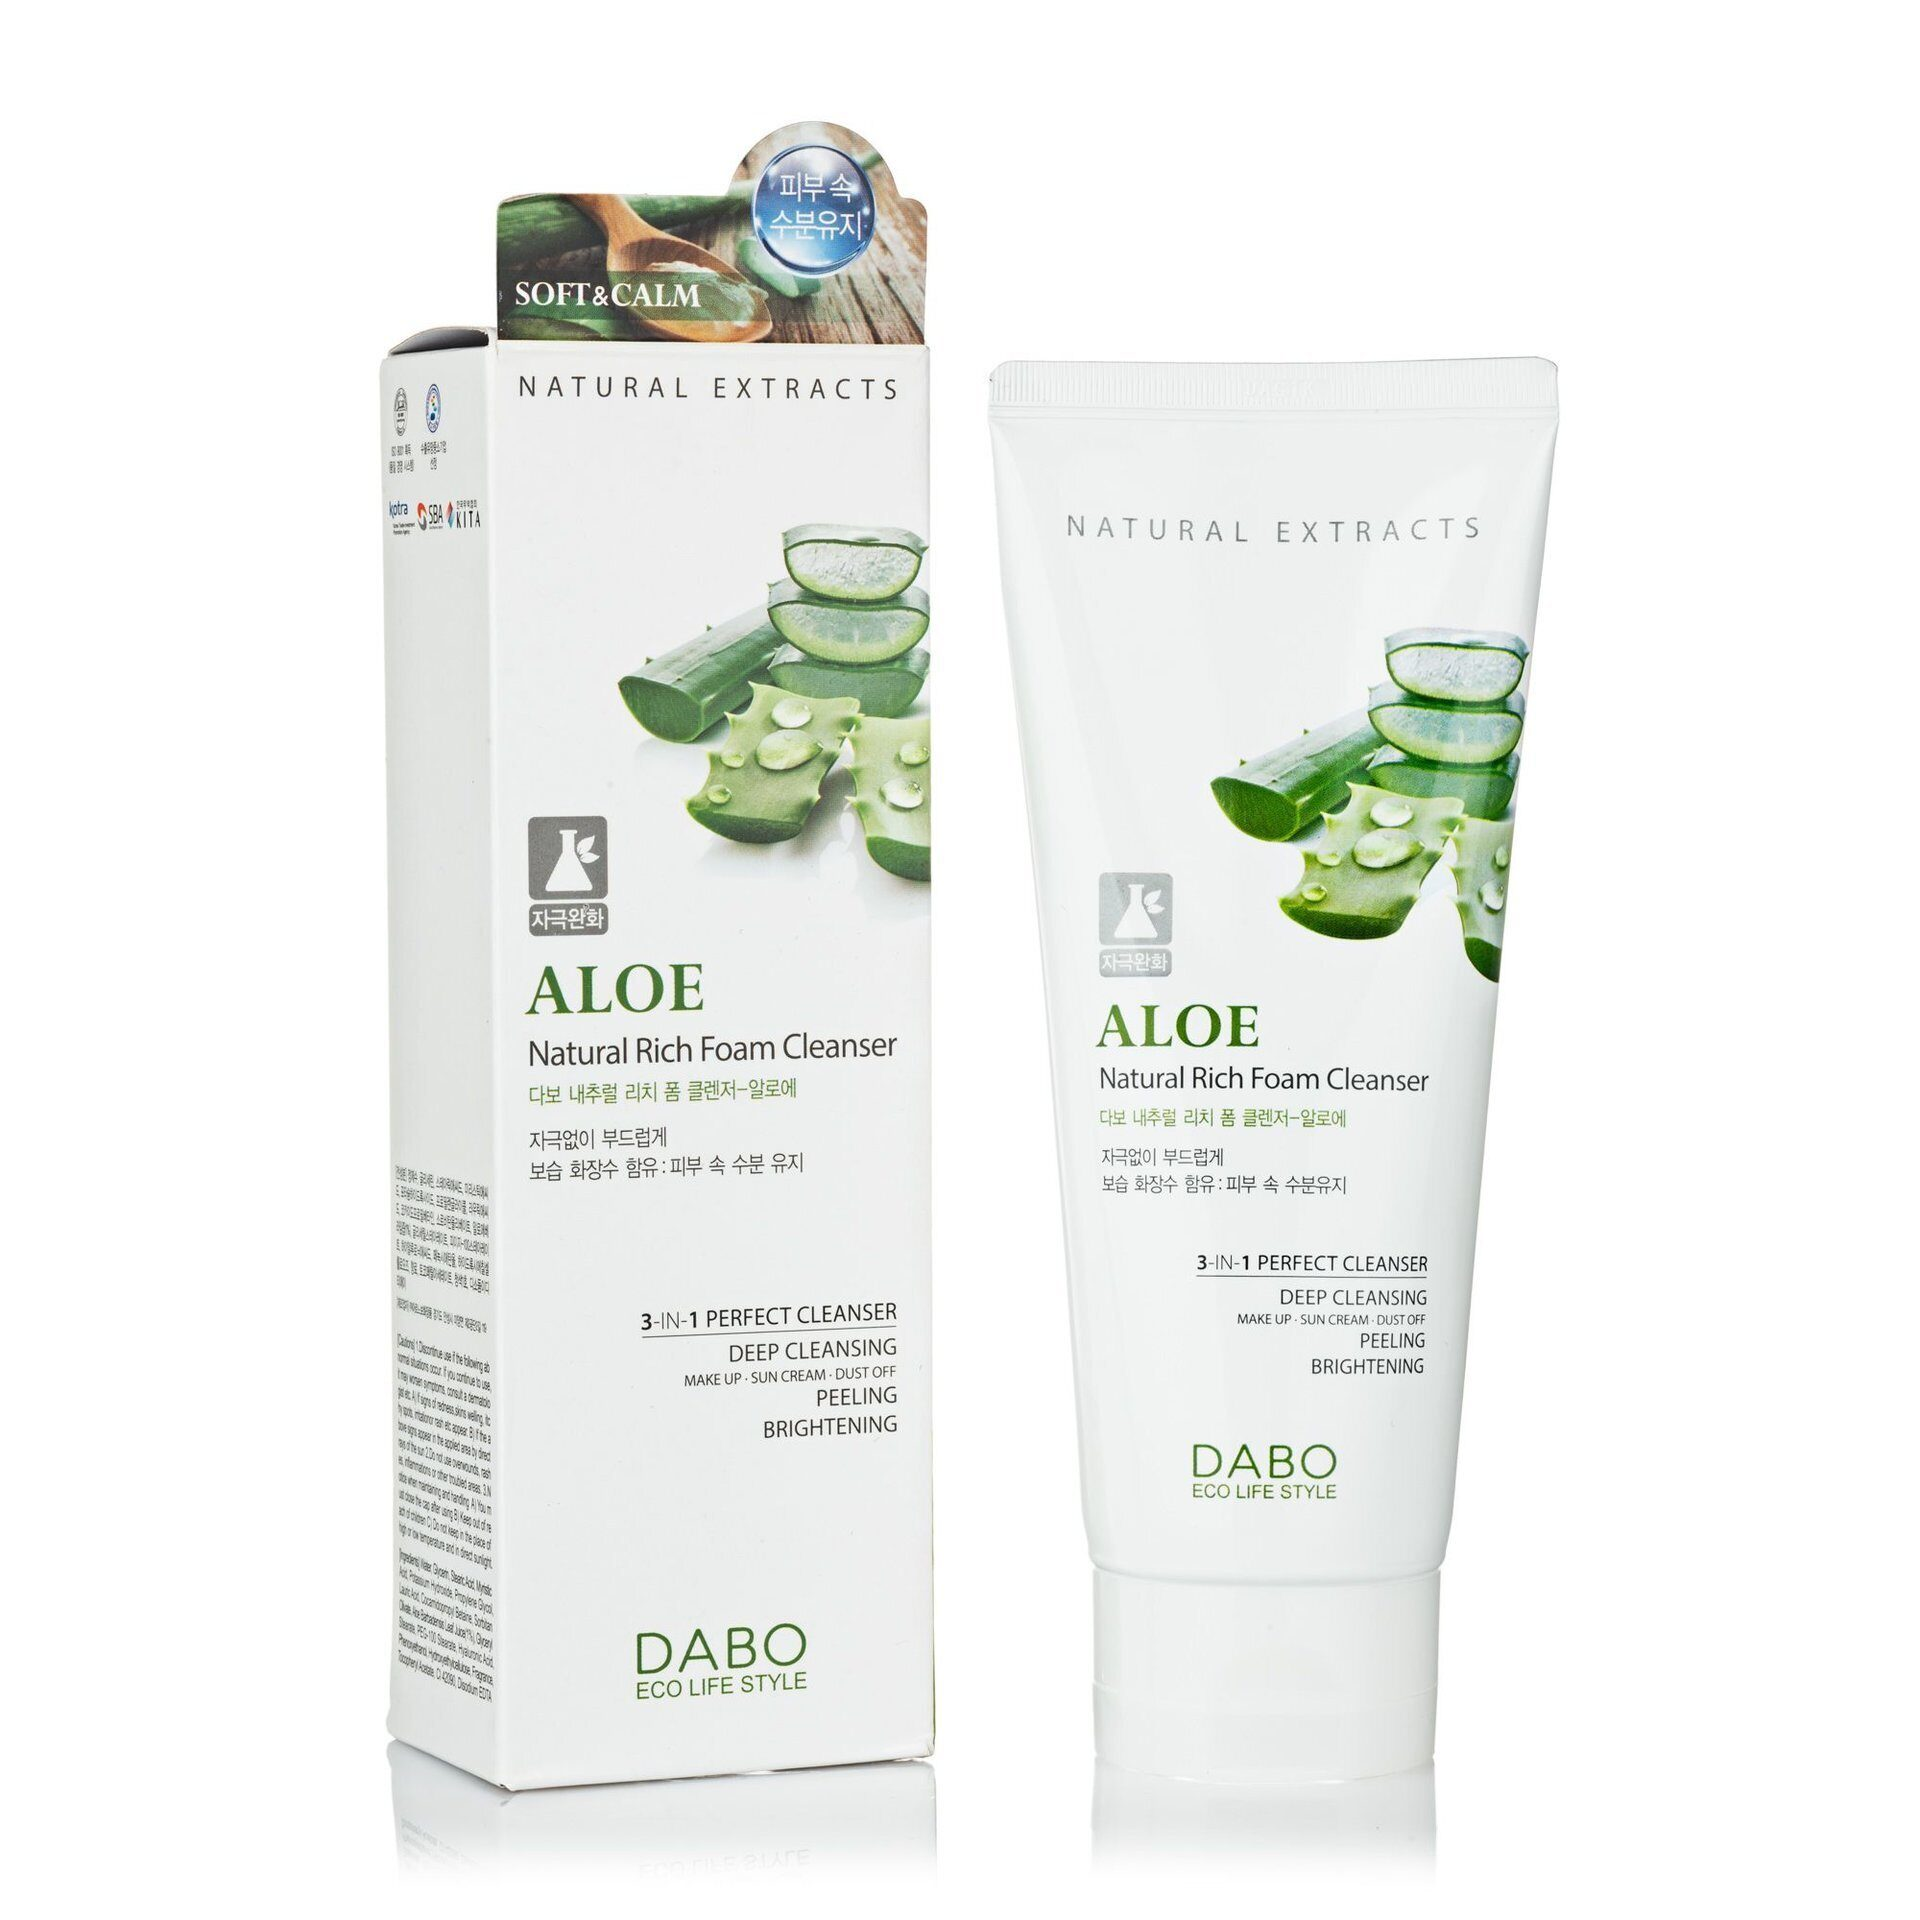 Пенка для умывания DABO Aloe Natural Rich Foam Cleanser 3в1 180 ml.